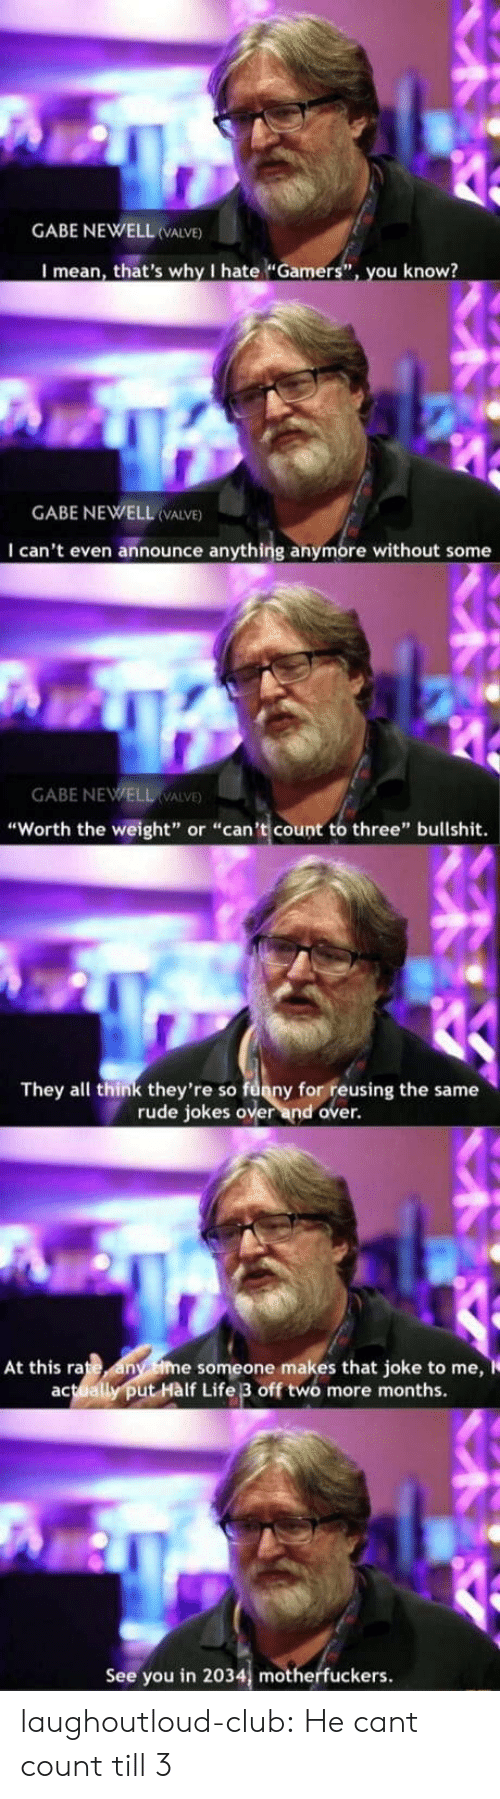 "Motherfuckers: GABE NEWELL VALVE)  I mean, that's why I hate ""Gamers"", you know?  GABE NEWELL (VALVE)  I can't even announce anything anymore without some  GABE NEWELL VALVE  ""Worth the weight"" or ""can't count to three"" bullshit.  They all think they're so funny for reusing the same  rude jokes over and over.  At this rate any ime someone makes that joke to me,  actually put Hàlf Life 3 off two more months.  See you in 2034, motherfuckers. laughoutloud-club:  He cant count till 3"